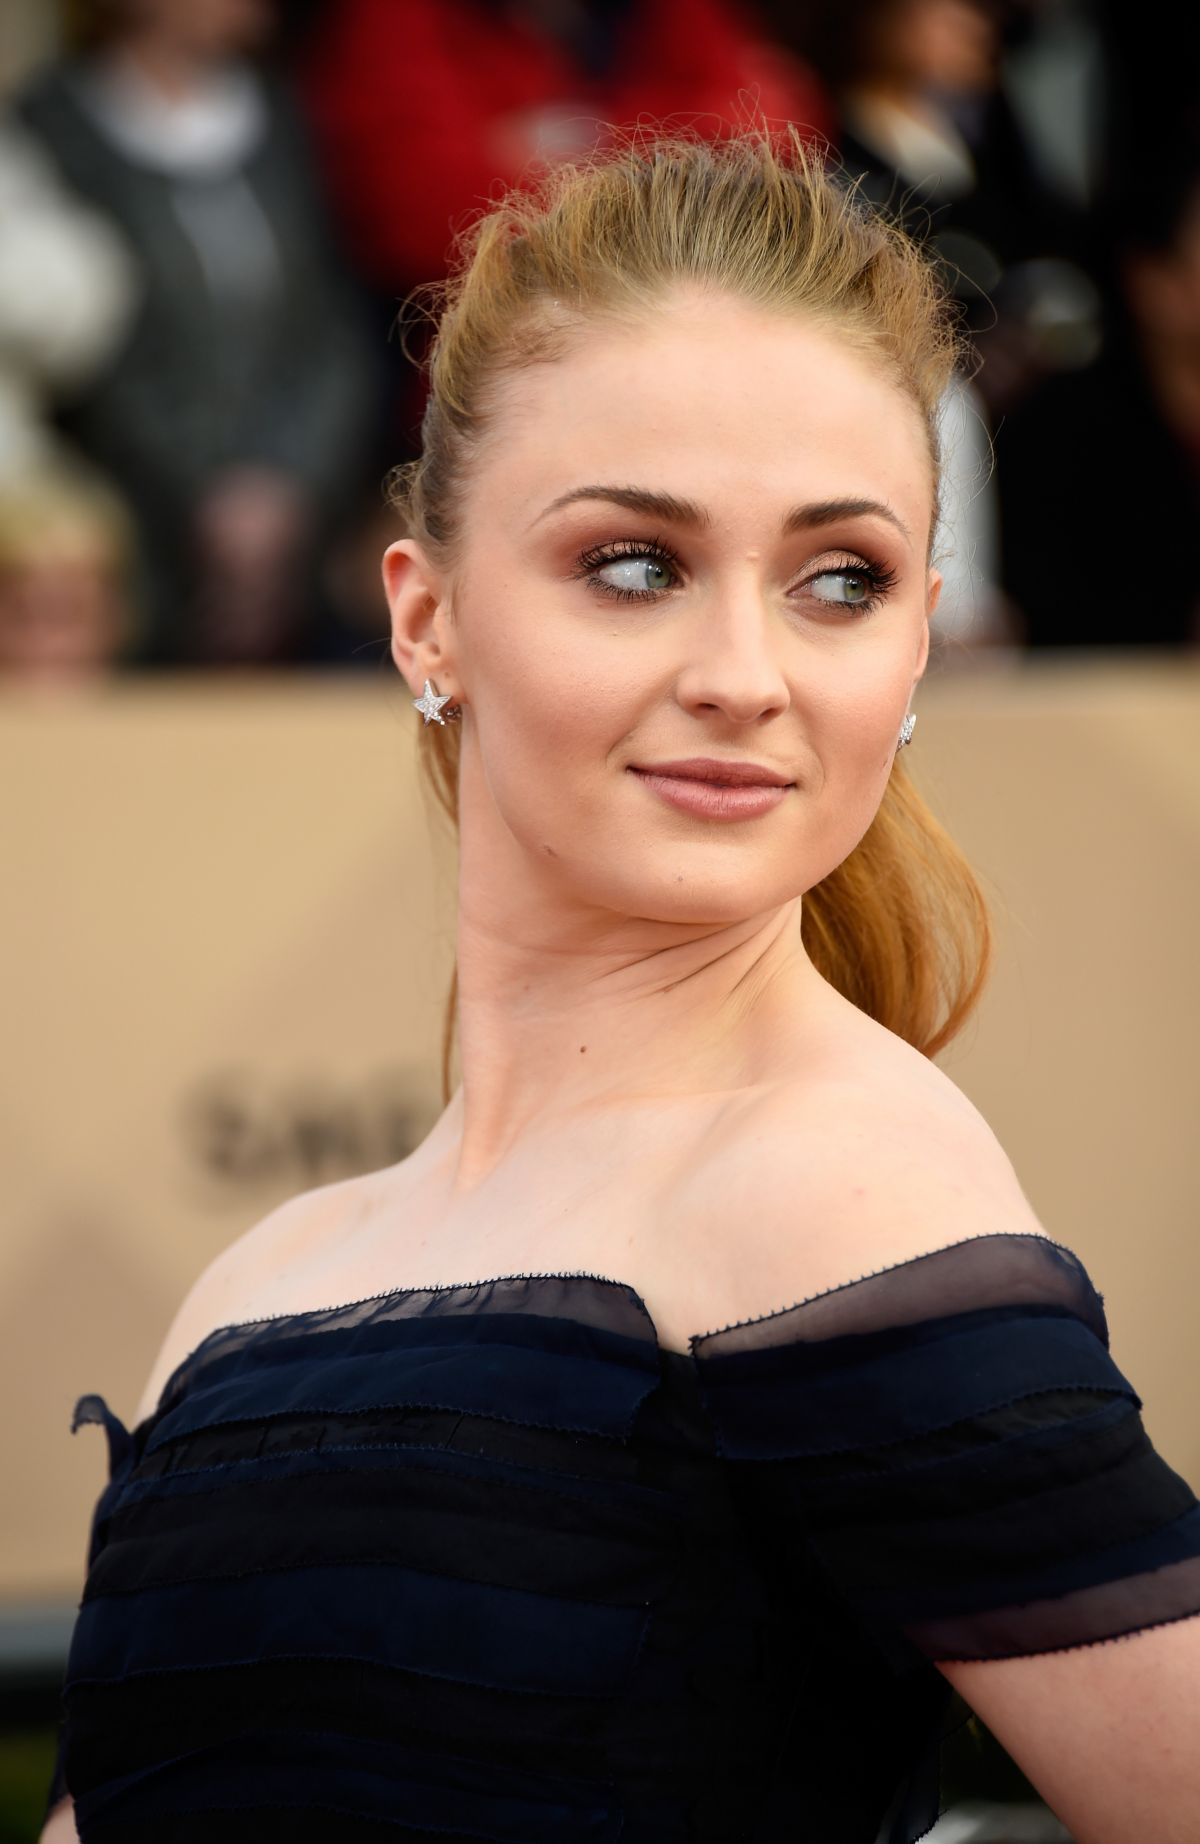 sophie turner iconssophie turner vk, sophie turner 2017, sophie turner 2016, sophie turner gif hunt, sophie turner png, sophie turner game of thrones, sophie turner gallery, sophie turner twitter, sophie turner jean grey, sophie turner model, sophie turner height 2016, sophie turner style, sophie turner icons, sophie turner fan site, sophie turner tattoos, sophie turner hq, sophie turner фото, sophie turner listal, sophie turner wiki, sophie turner модель